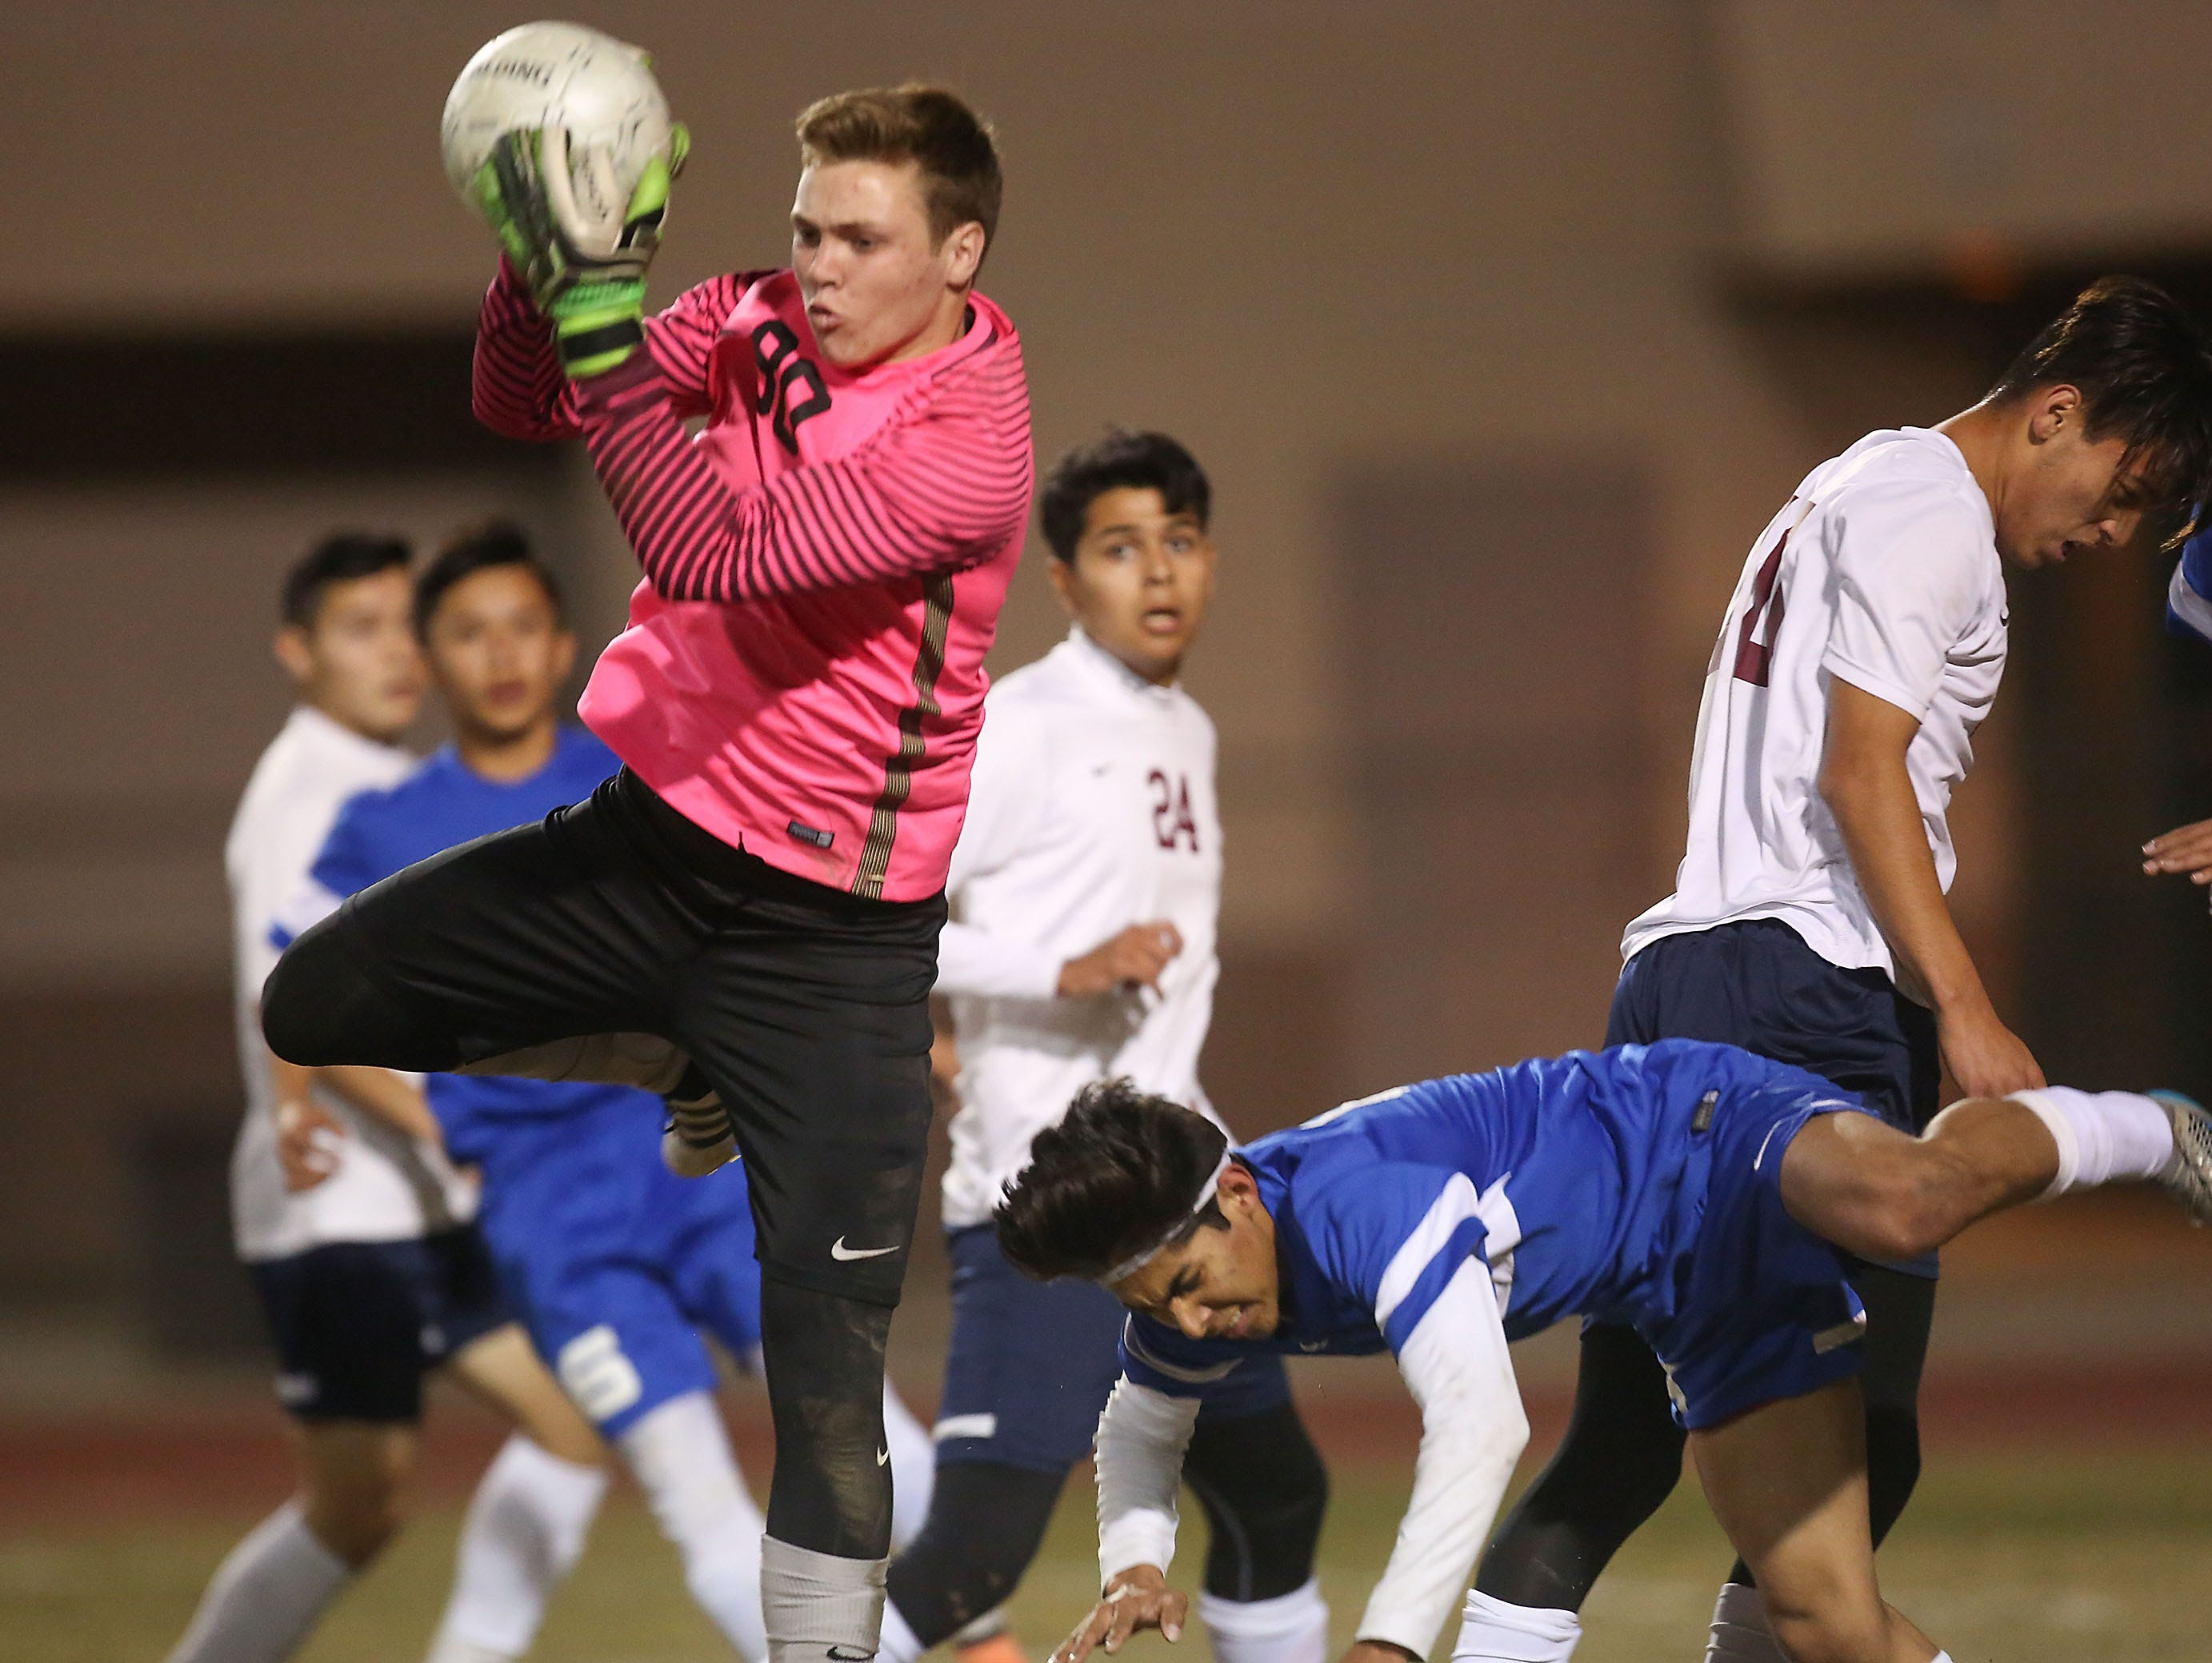 La Quinta goalkeeper Logan Prescott comes down with the ball during La Quinta's win, January 11, 2016.